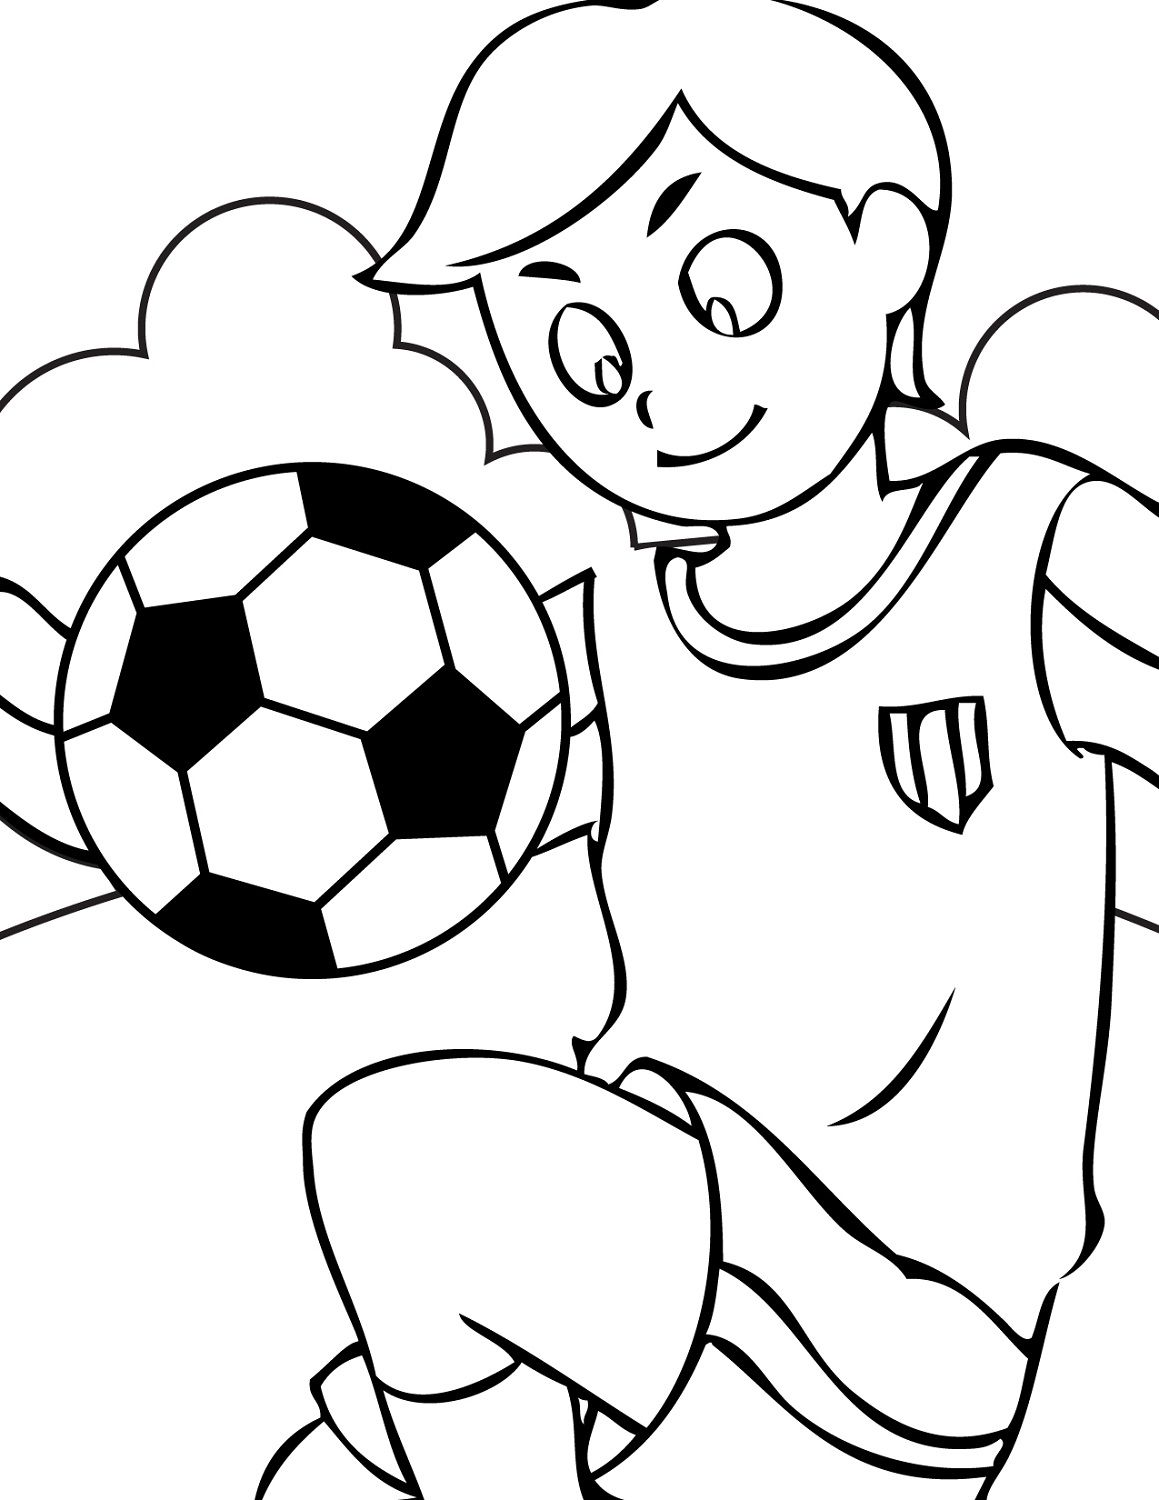 Football Color Pages Printable | Activity Shelter | Coloring Pages ...